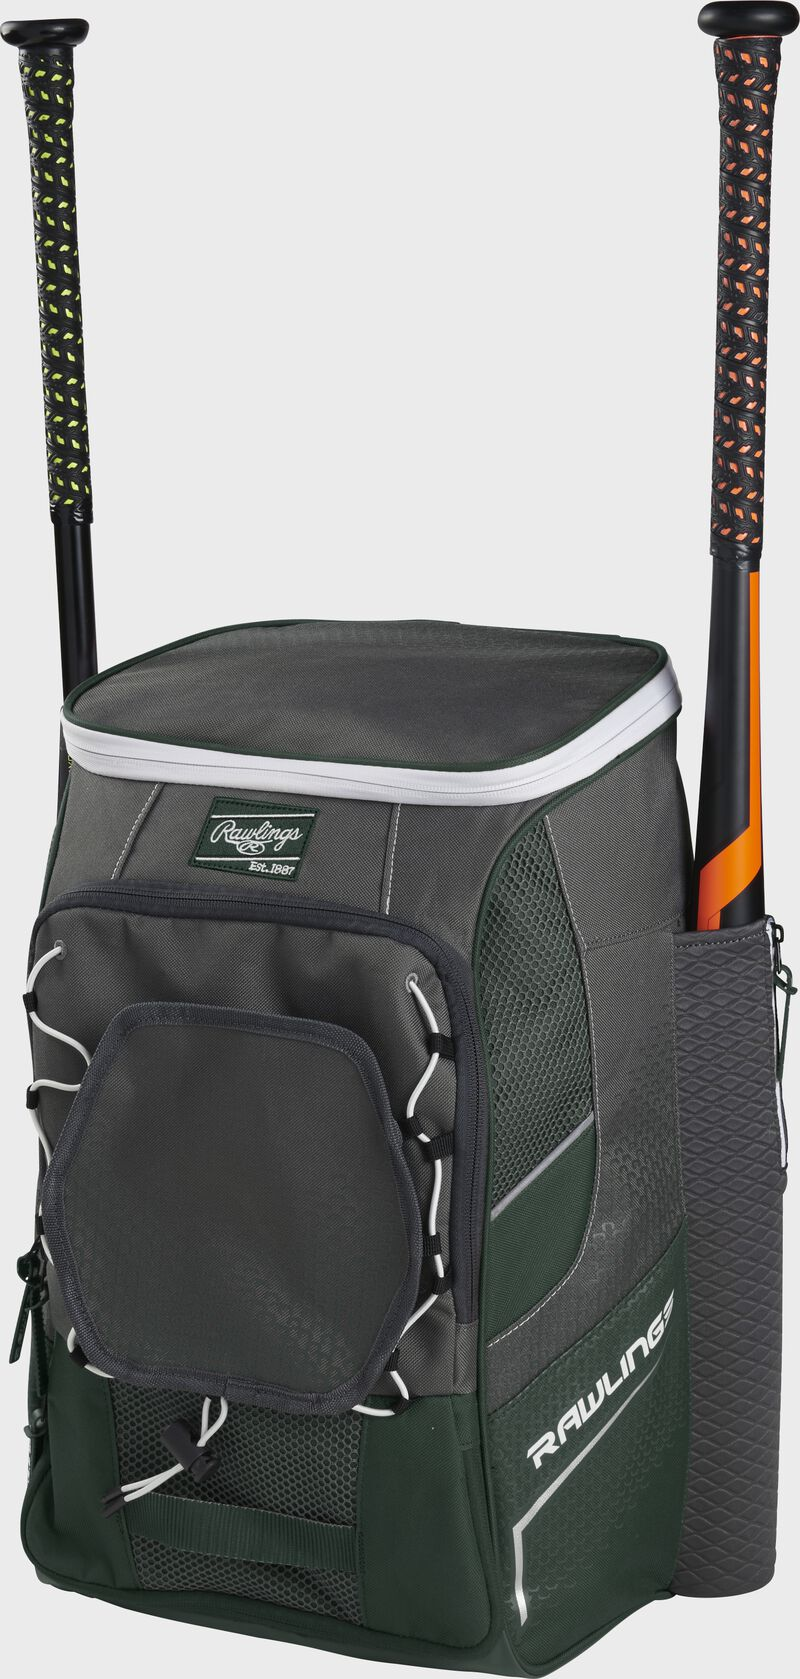 Front right angle view of a dark green Impulse backpack with two bats in the side sleeves - SKU: IMPLSE-DG